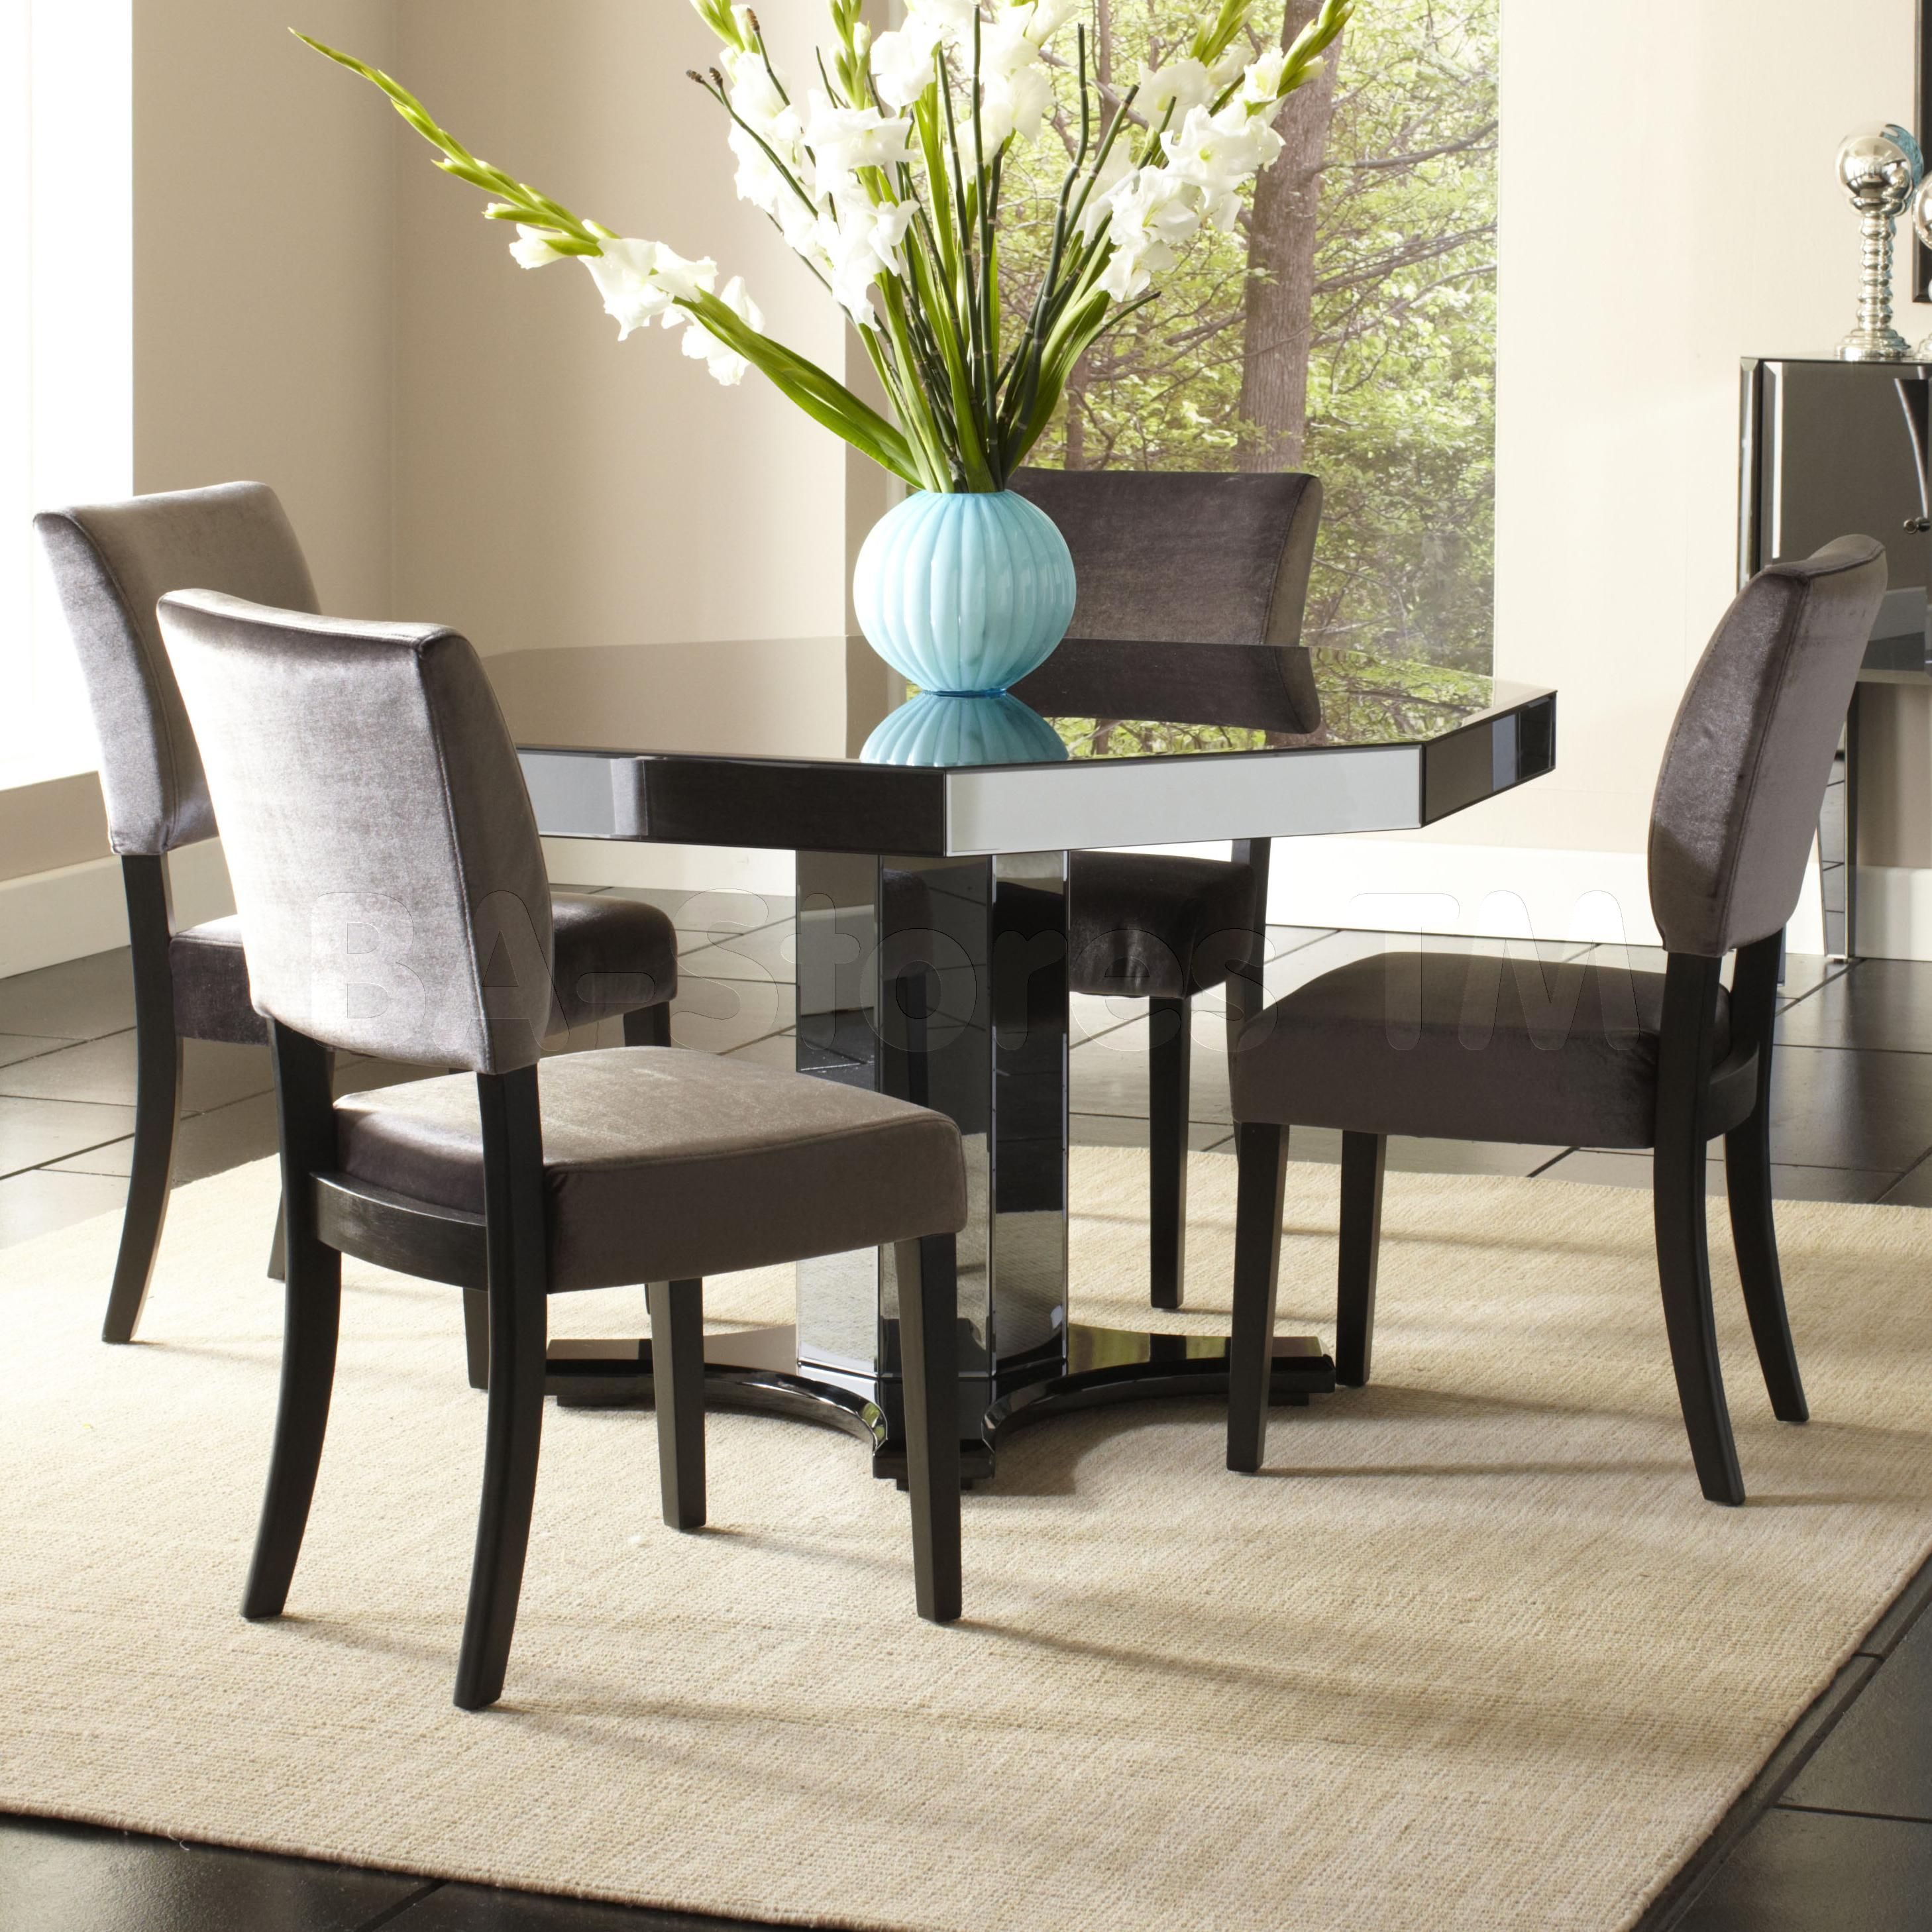 Parisian Smoked Mirror 5 Pc Octagon Dining Set Table And 4 Chairs